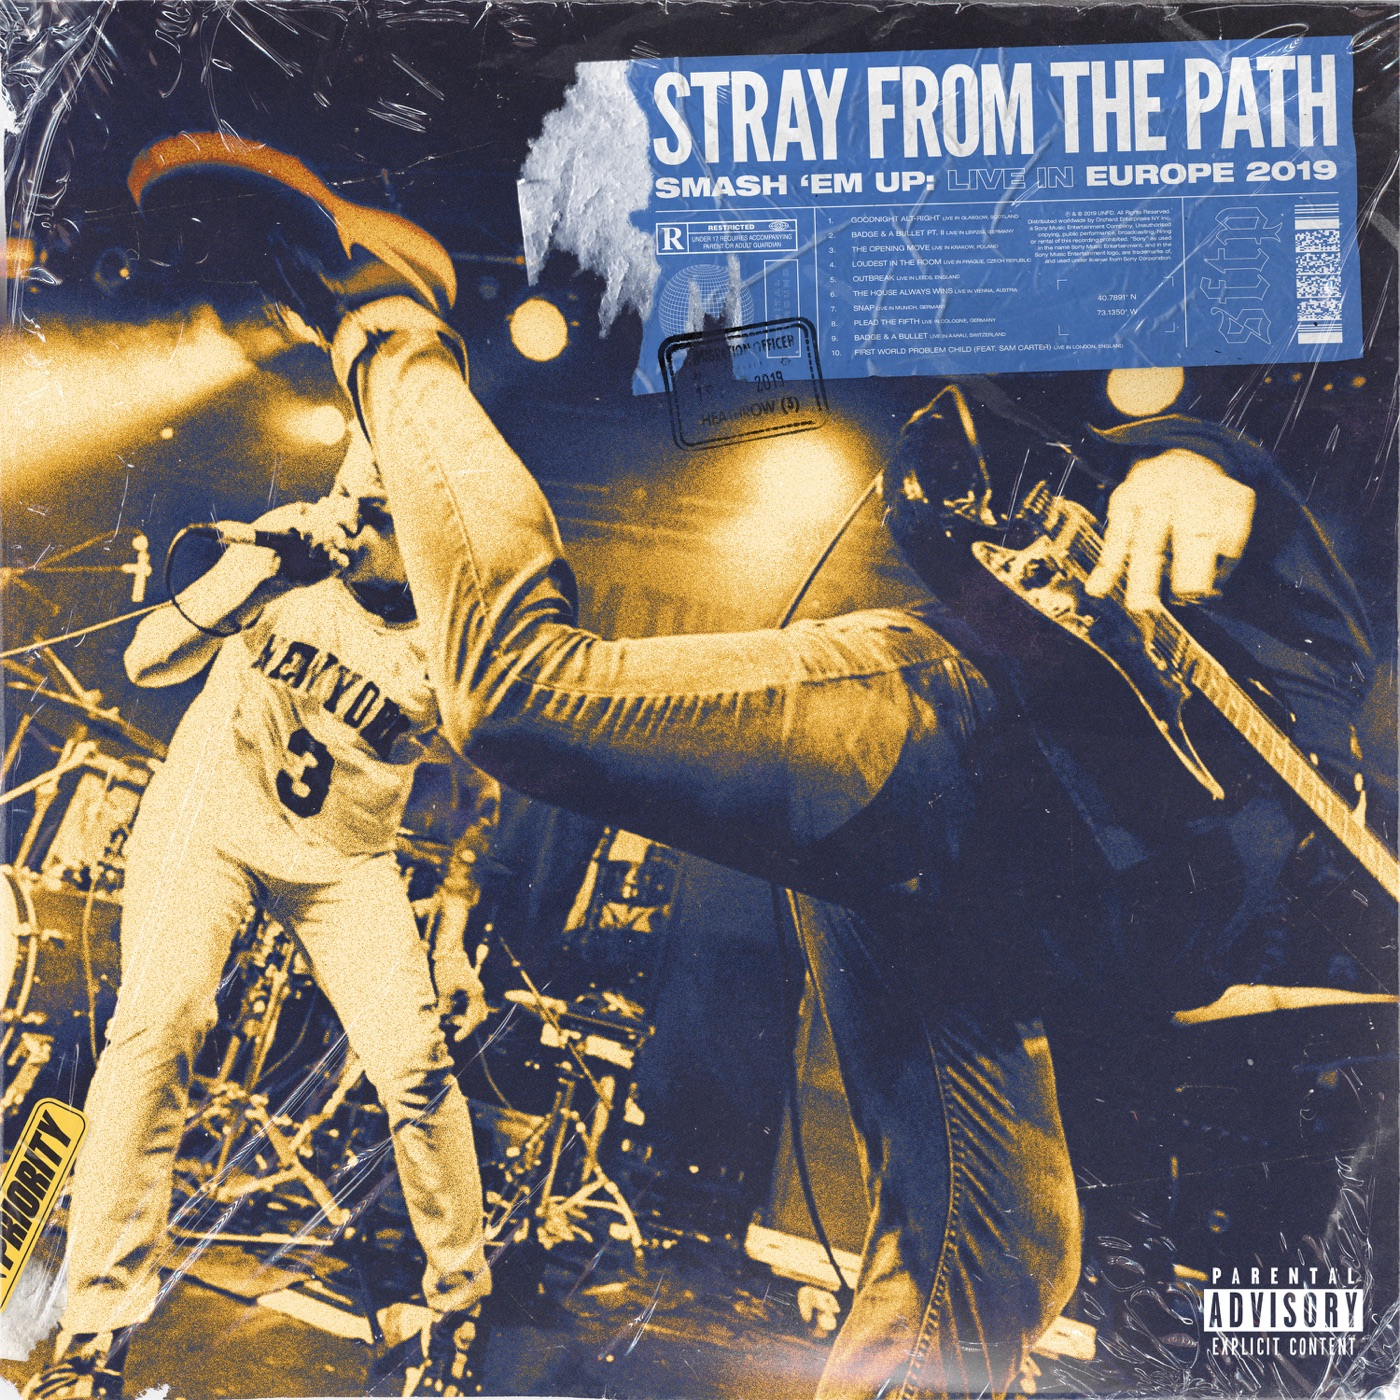 Stray From The Path - Smash 'Em Up Live in Europe (2019)